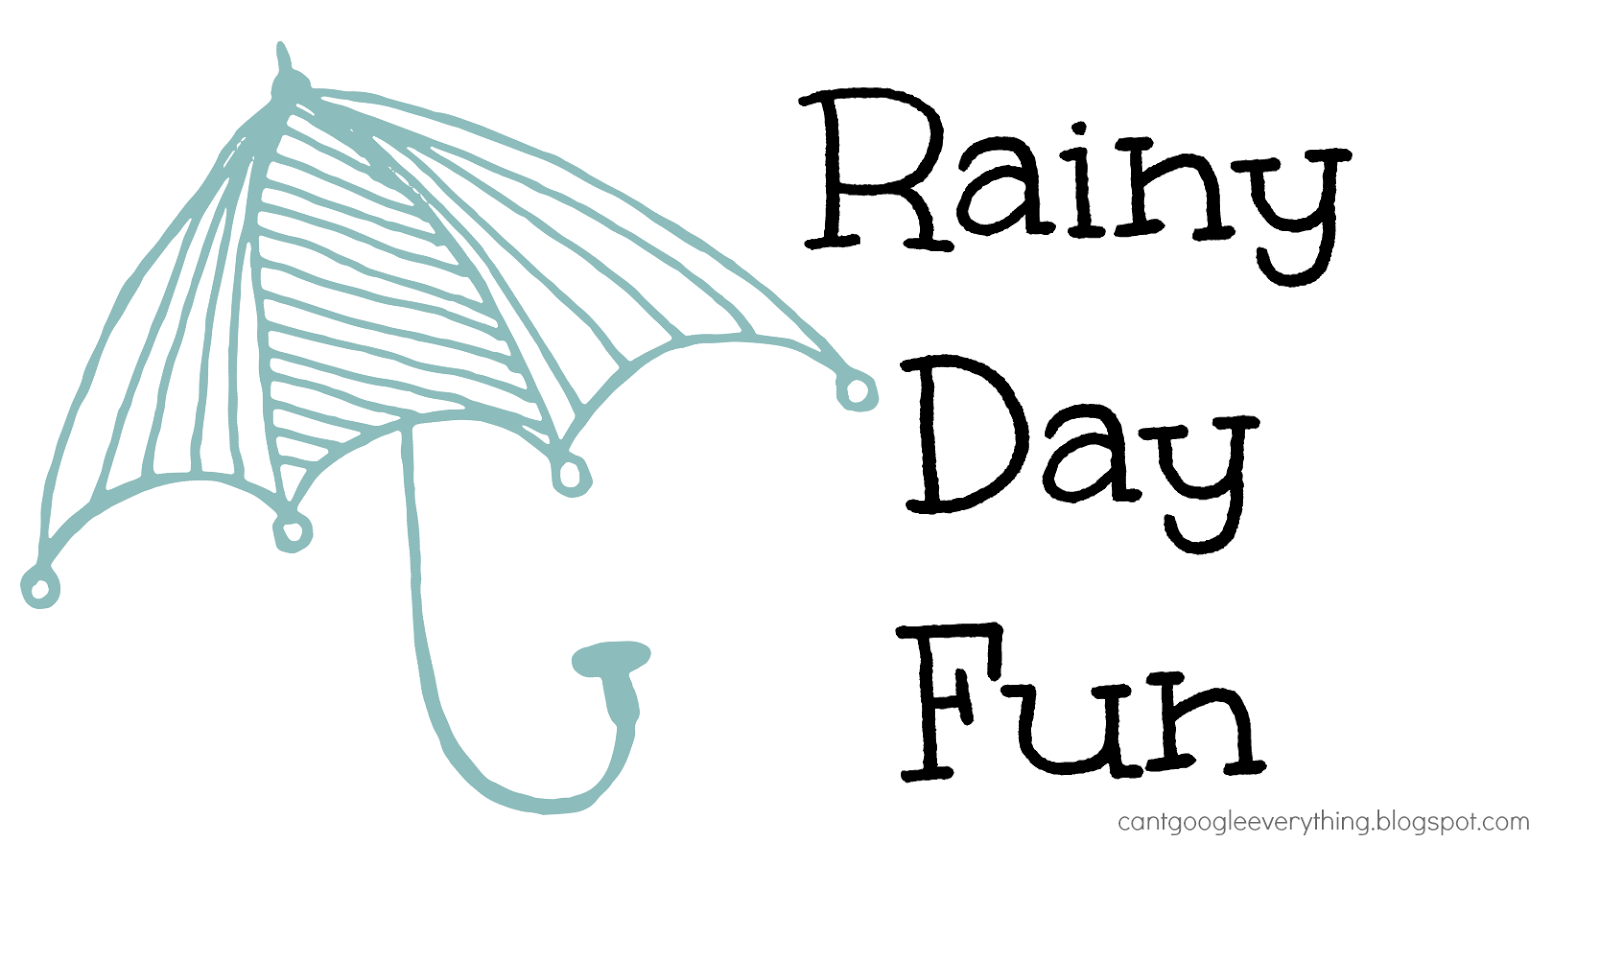 Rainy Day Fun!